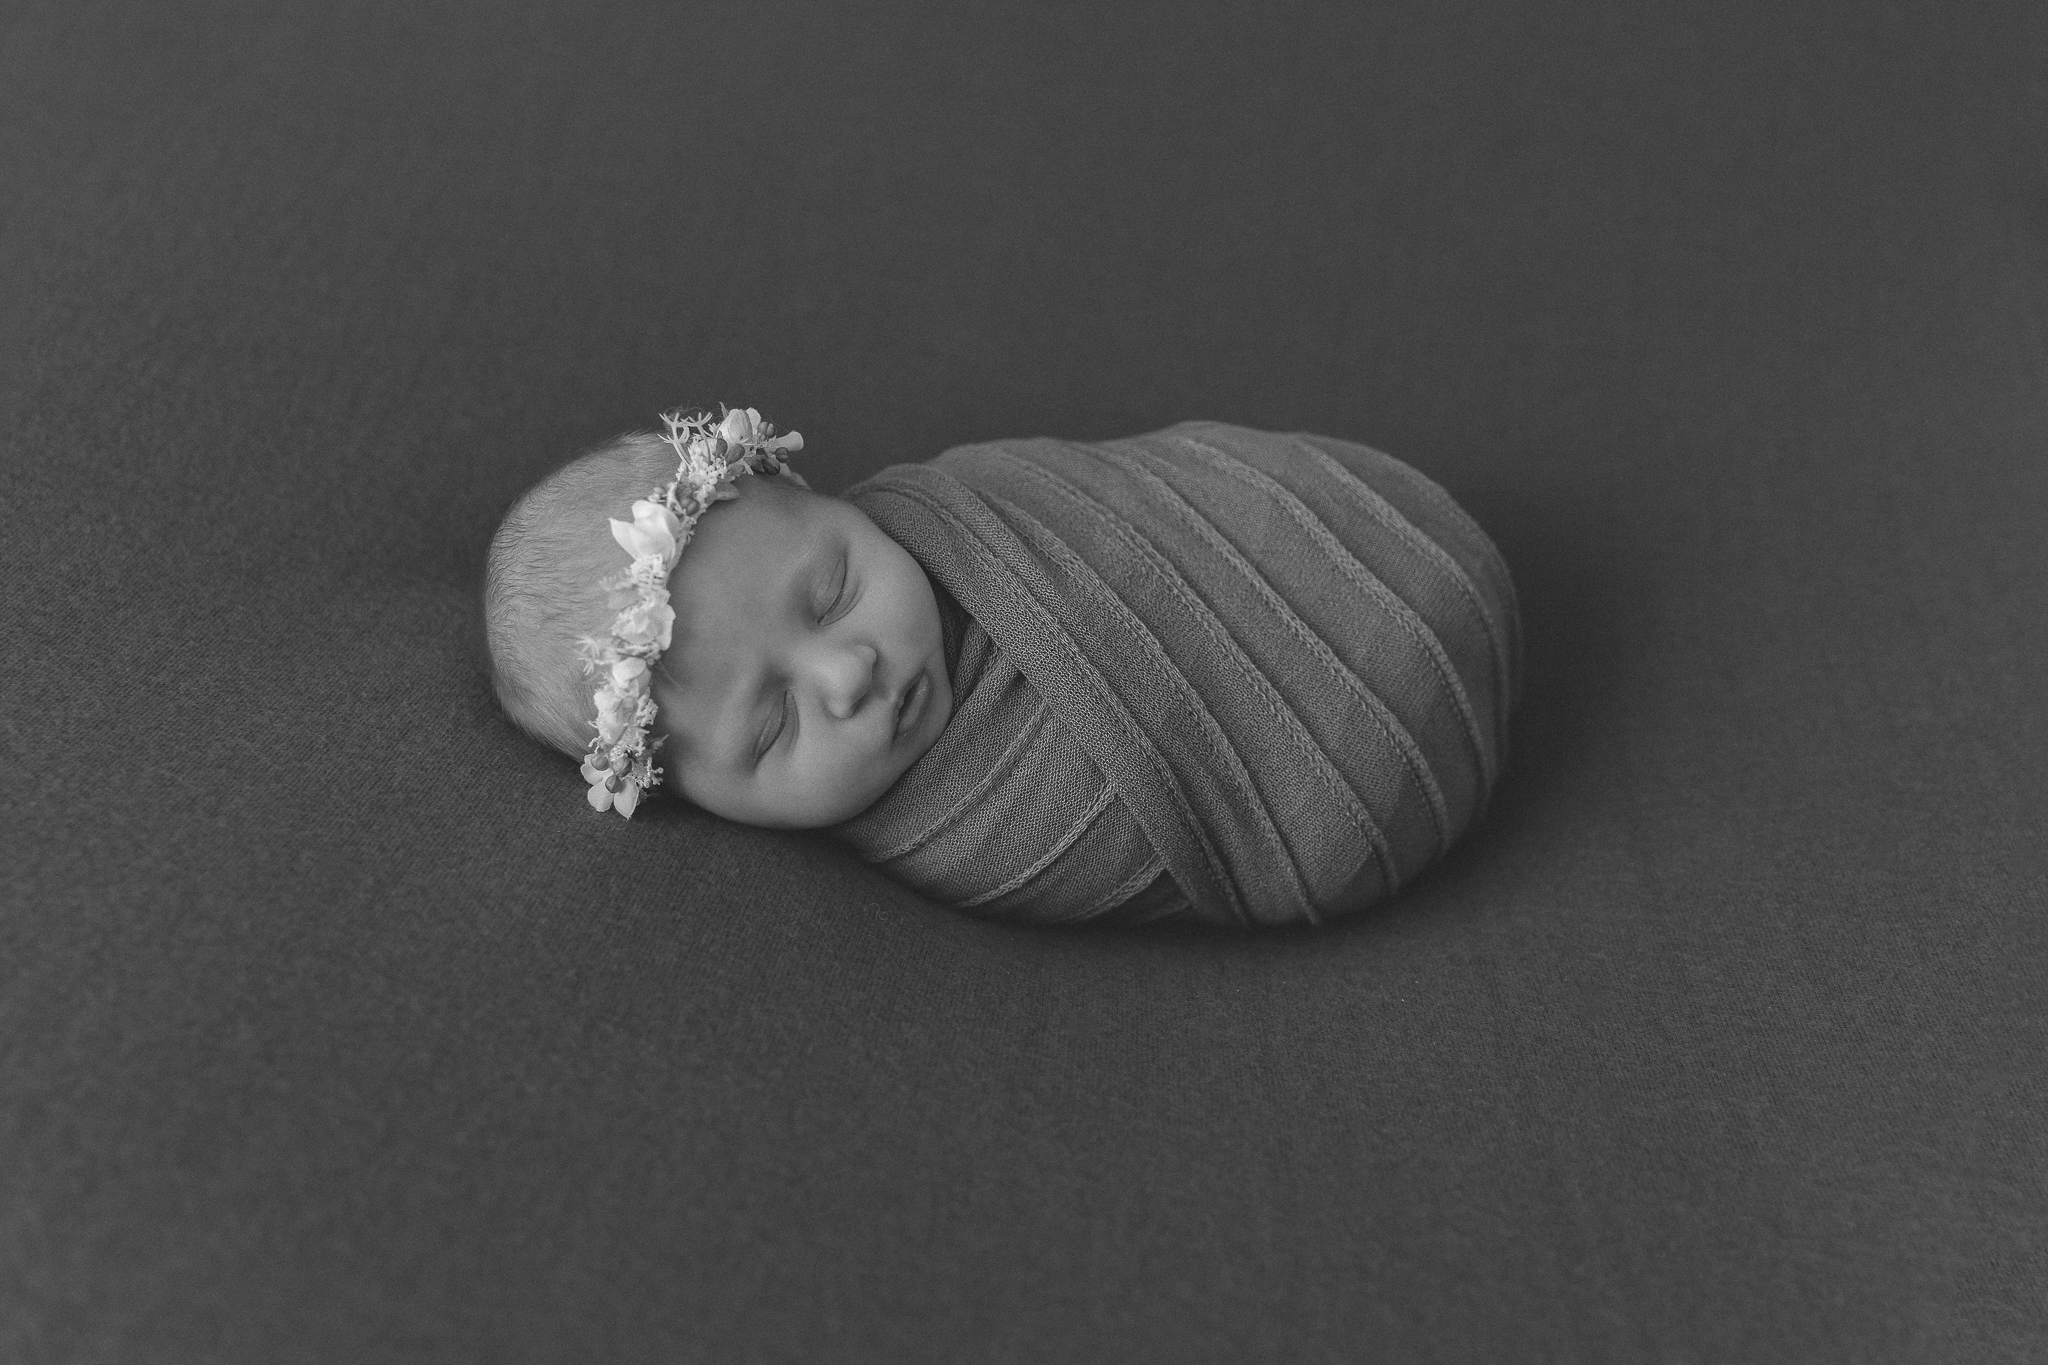 baby-newborn-photography-adelaide-halo-floral-blackandwhite